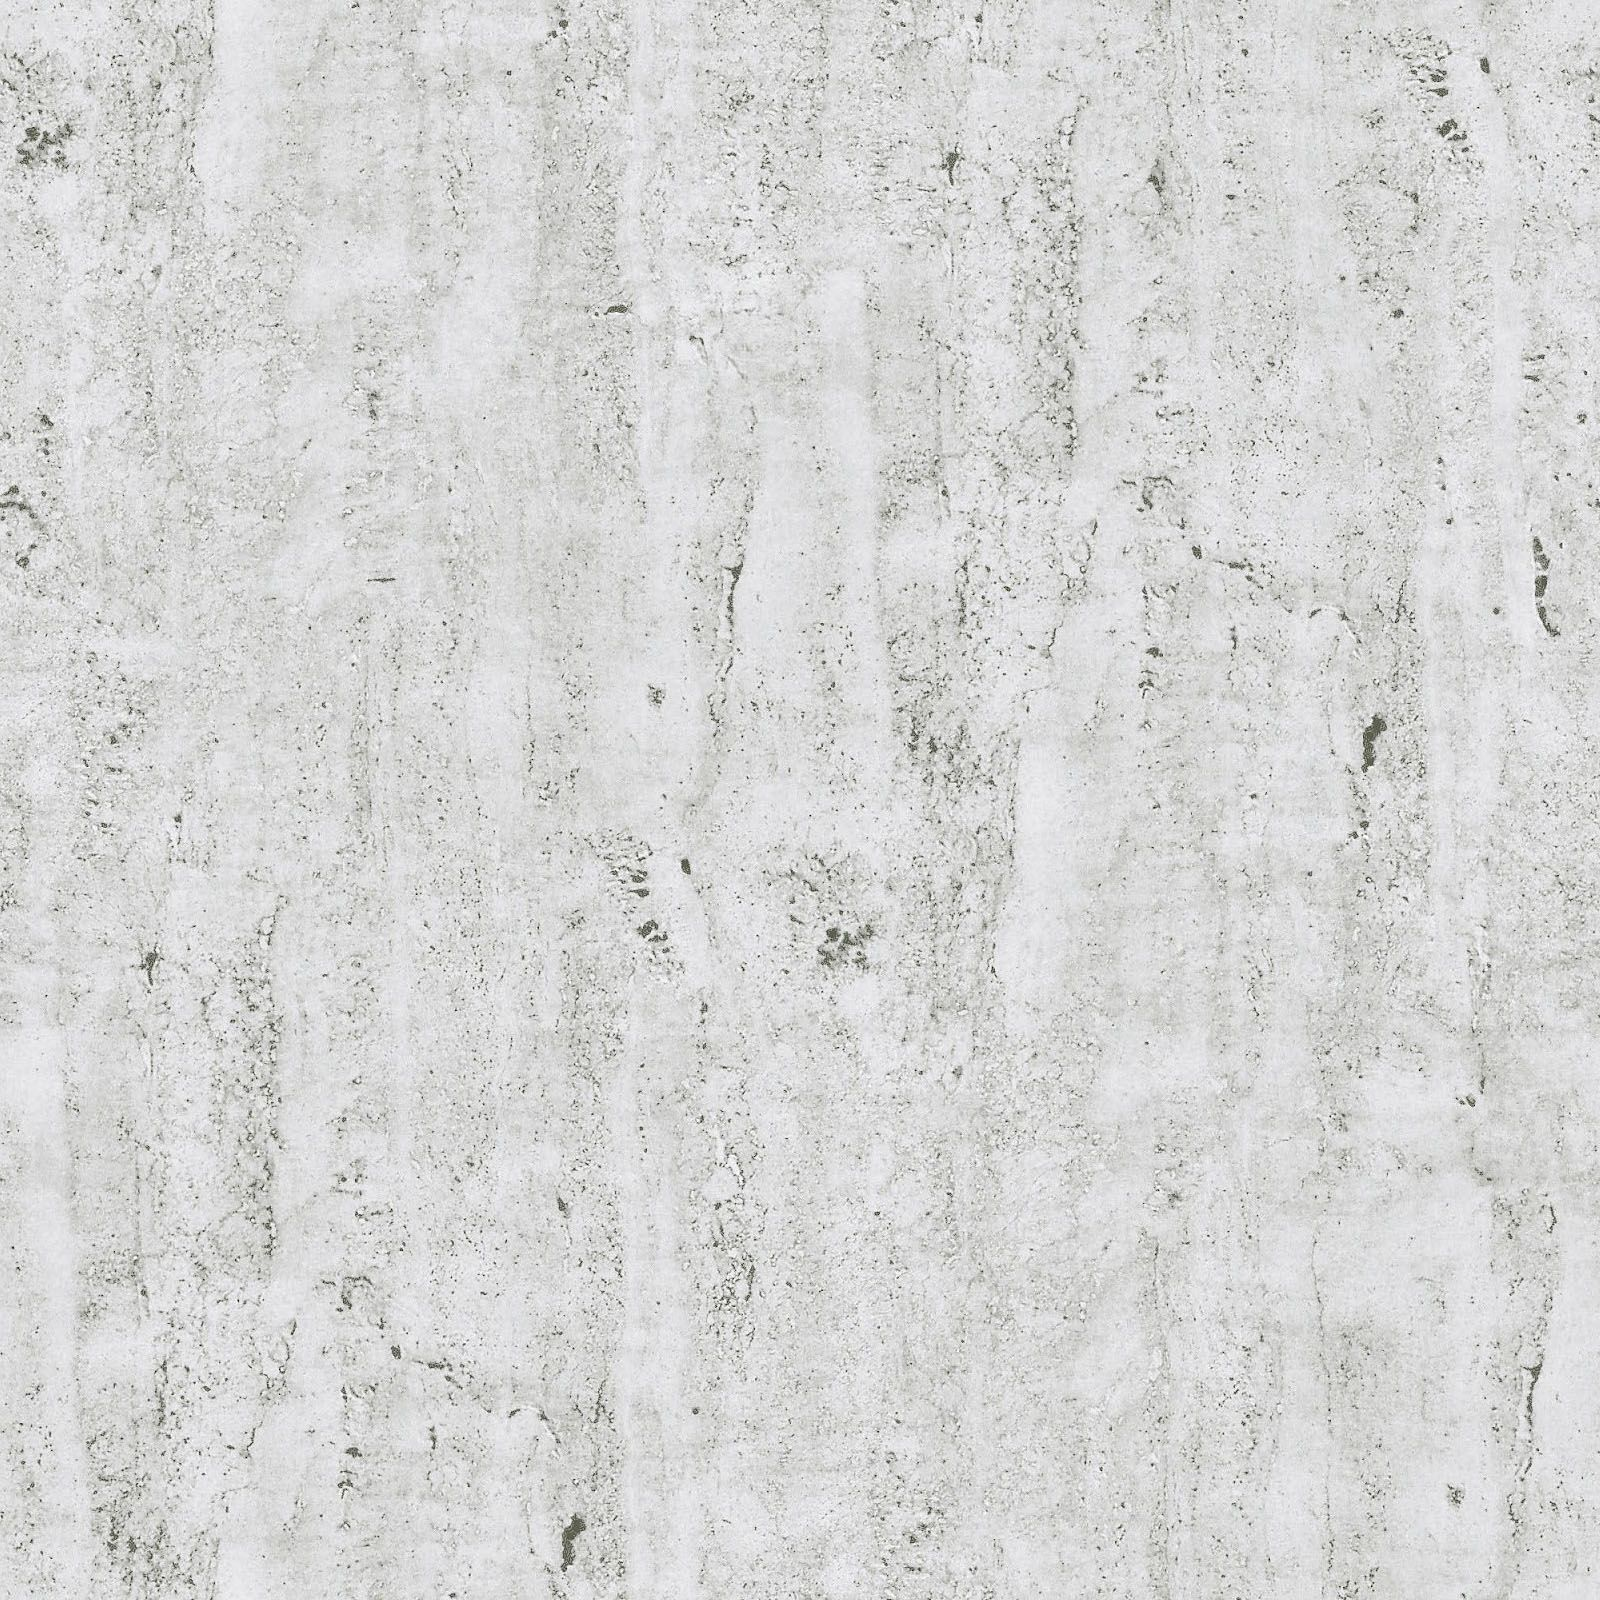 Interior wall texture seamless texturise seamless white marble  maps  road and pavement in